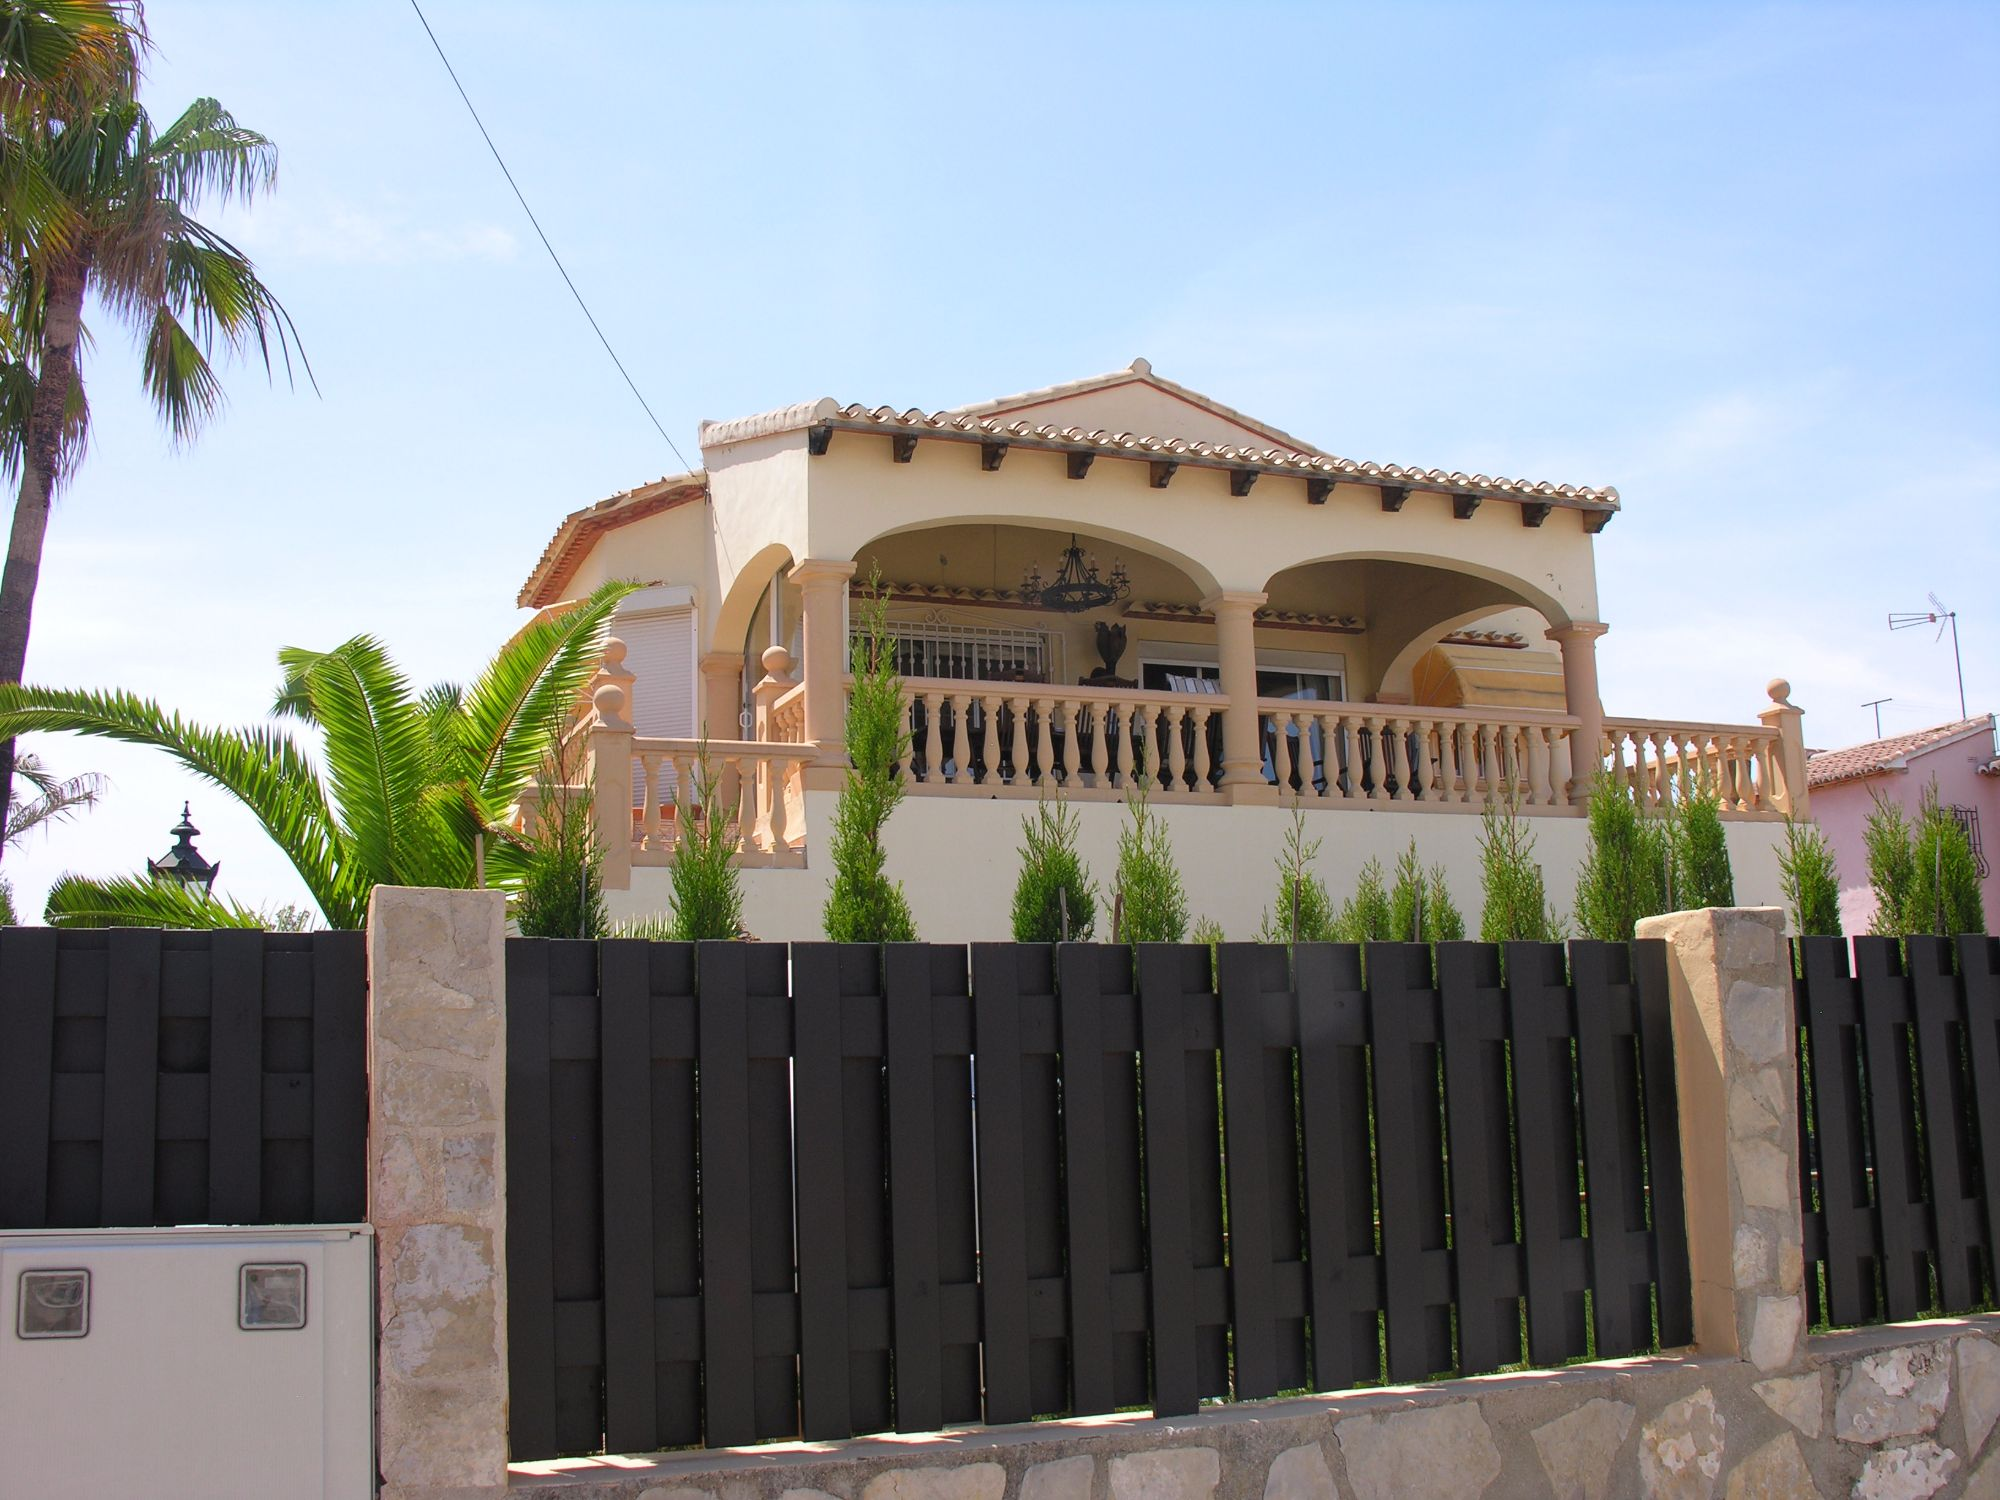 Villa El Dorado 4 bedrooms, Sleeps 8